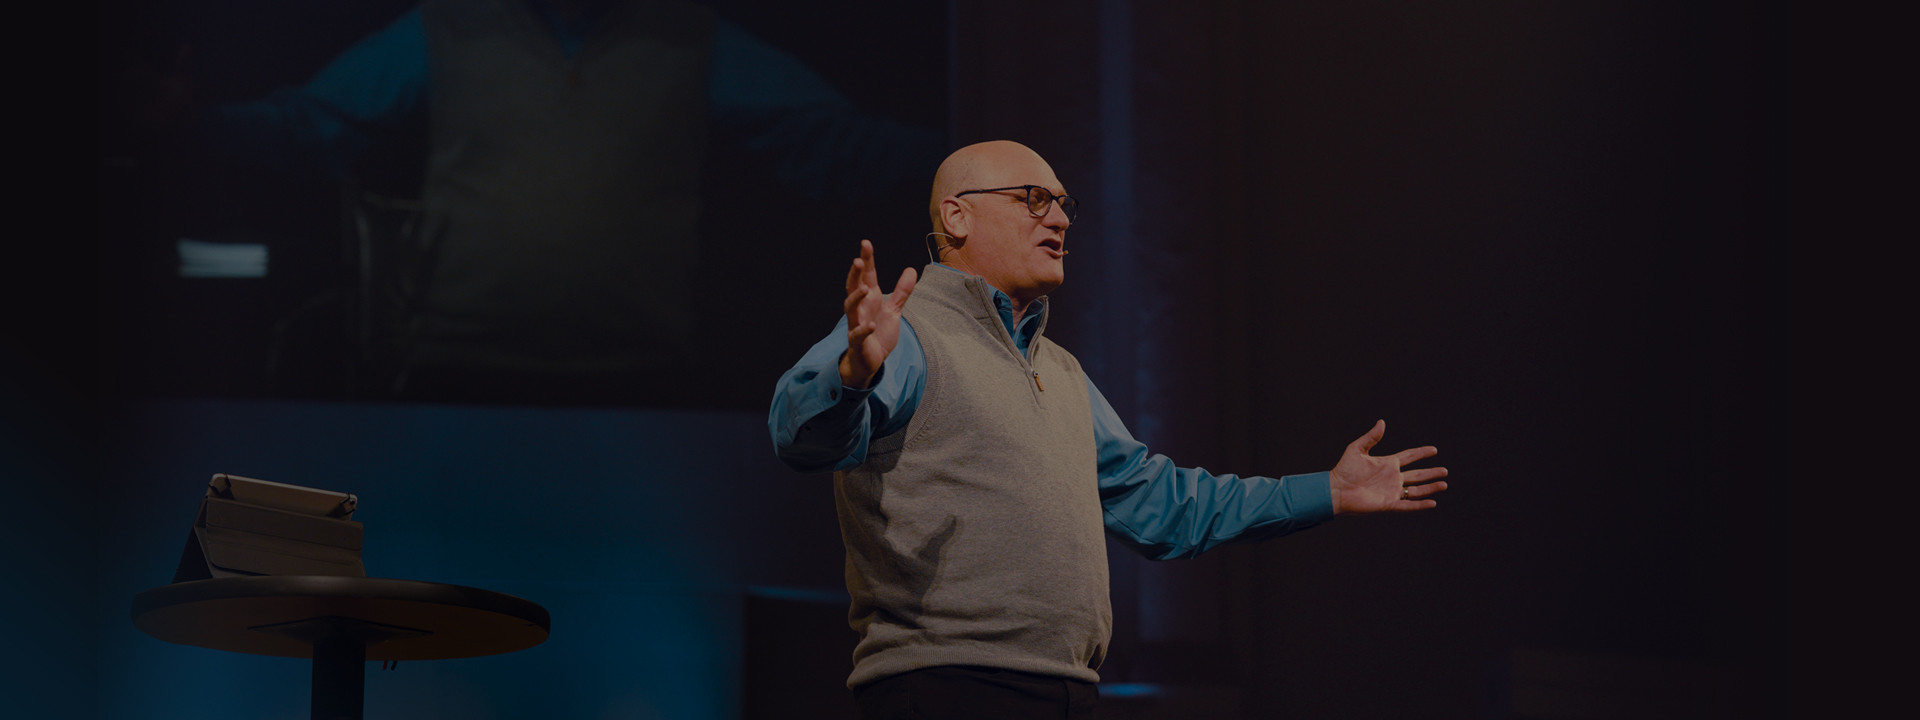 Pastor Willy Rice Teaching at Calvary Church Clearwater in Clearwater, Florida.